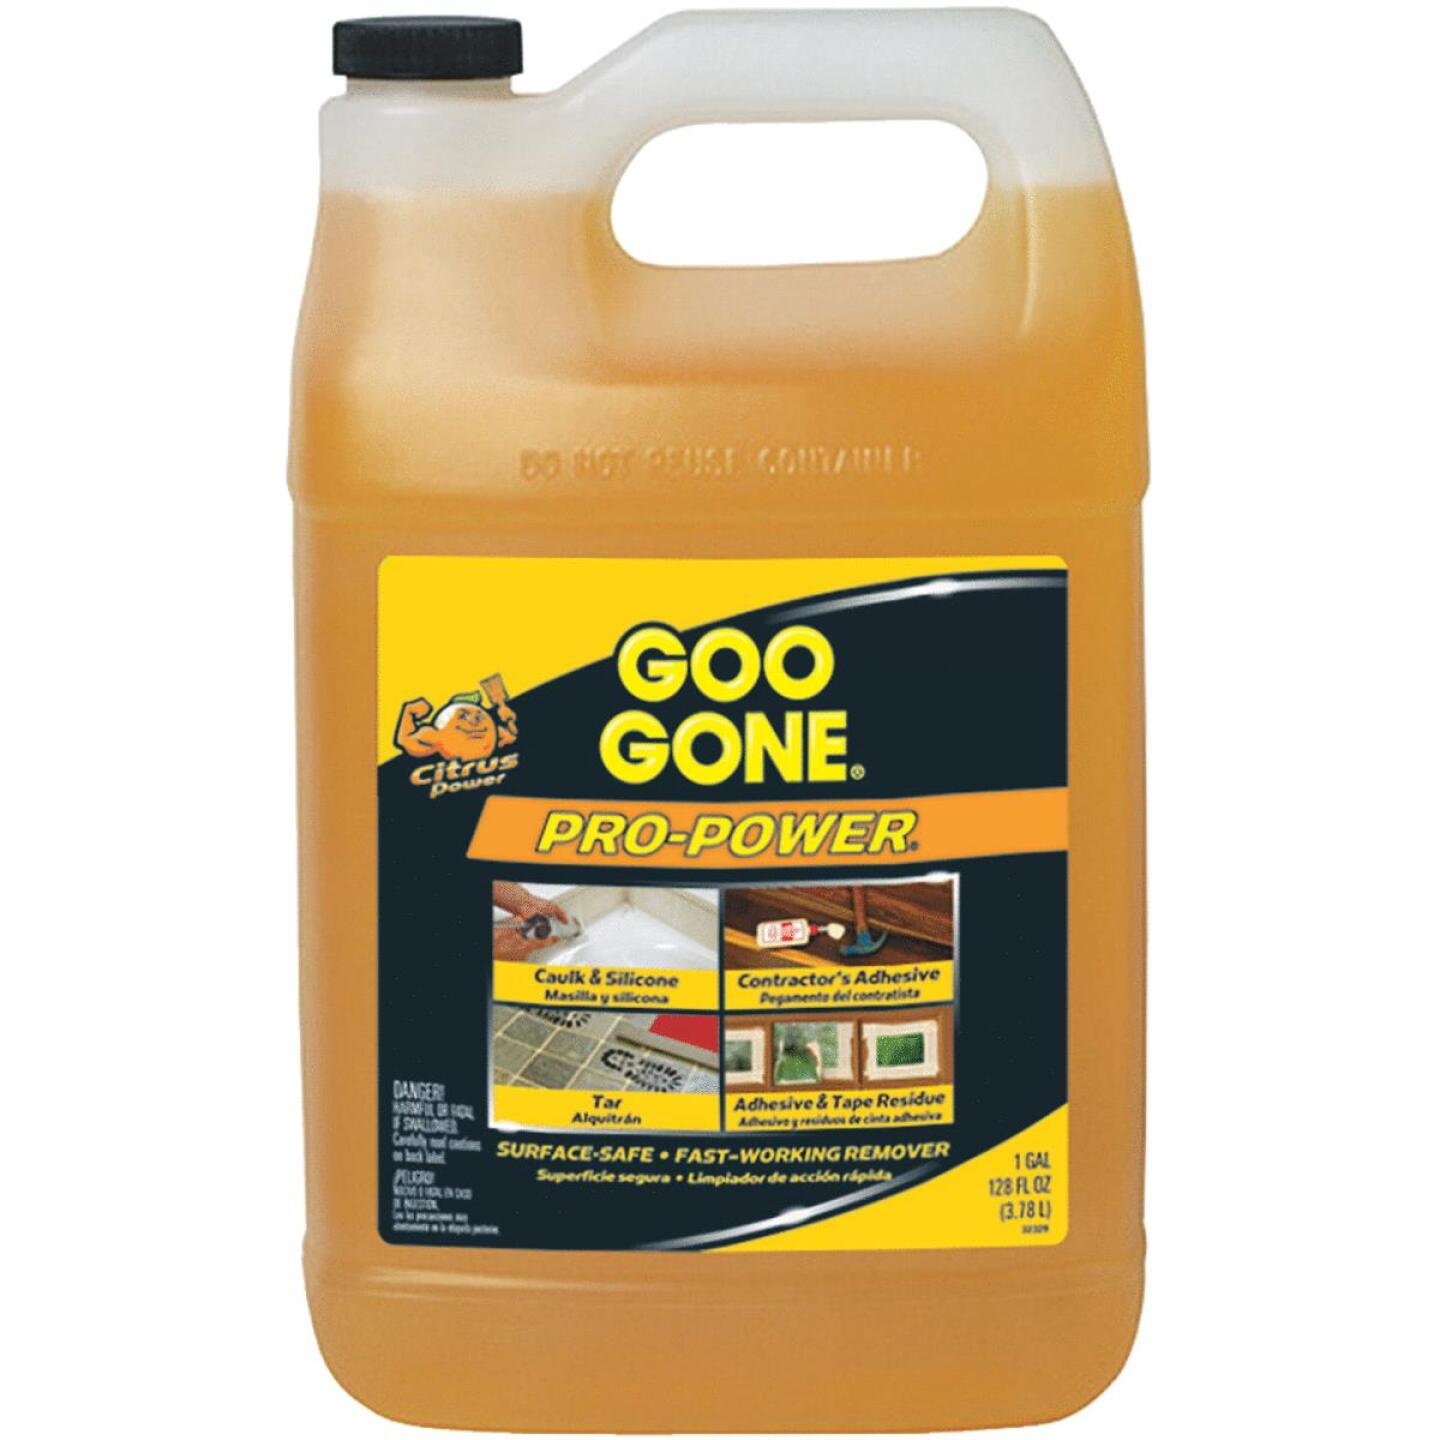 Goo Gone 1 Gal. Pro-Power Adhesive Remover Image 275